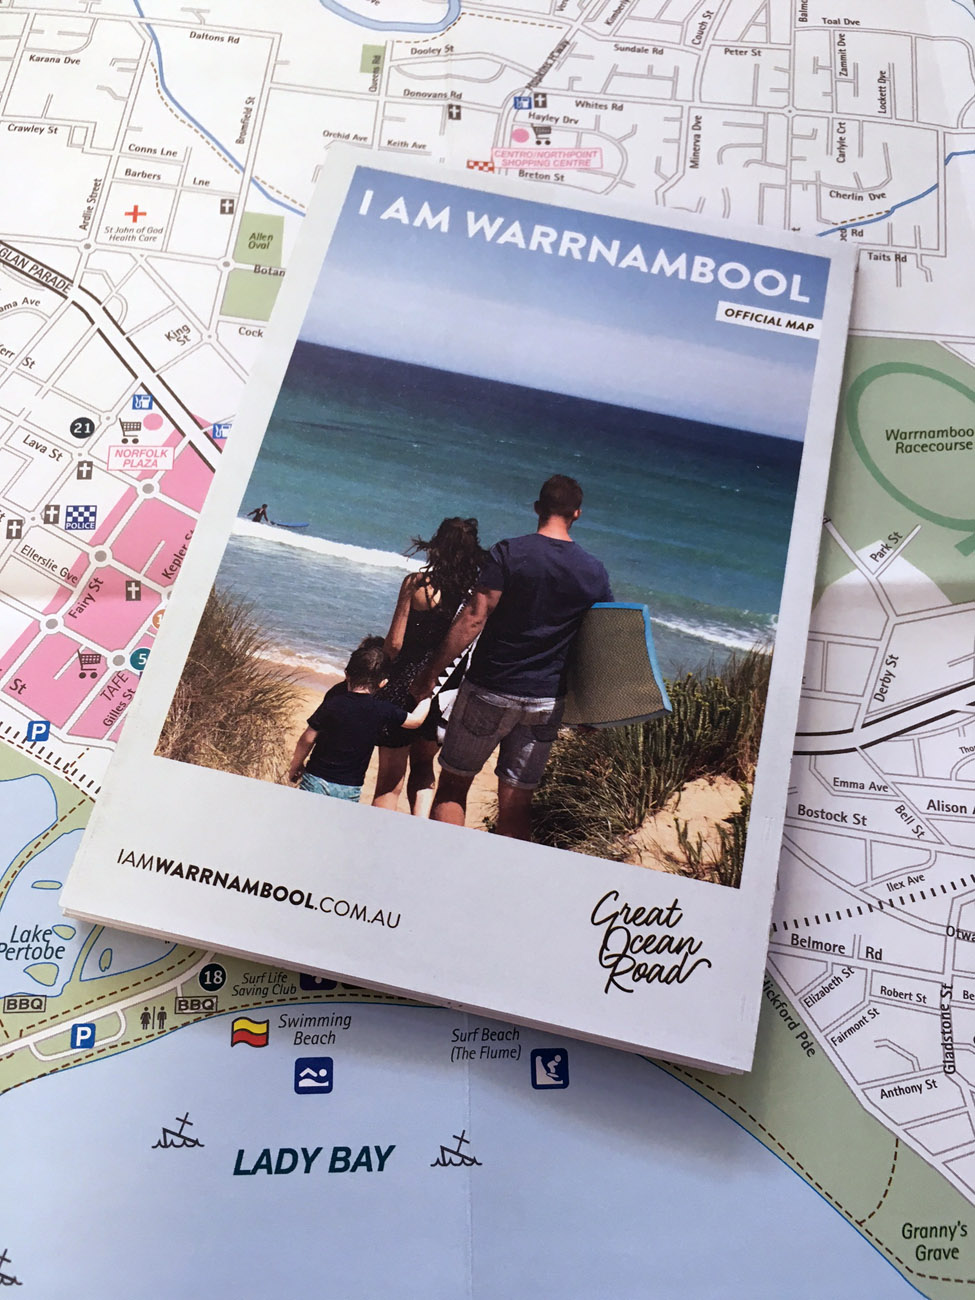 IAM_WARRNAMBOOL.jpg